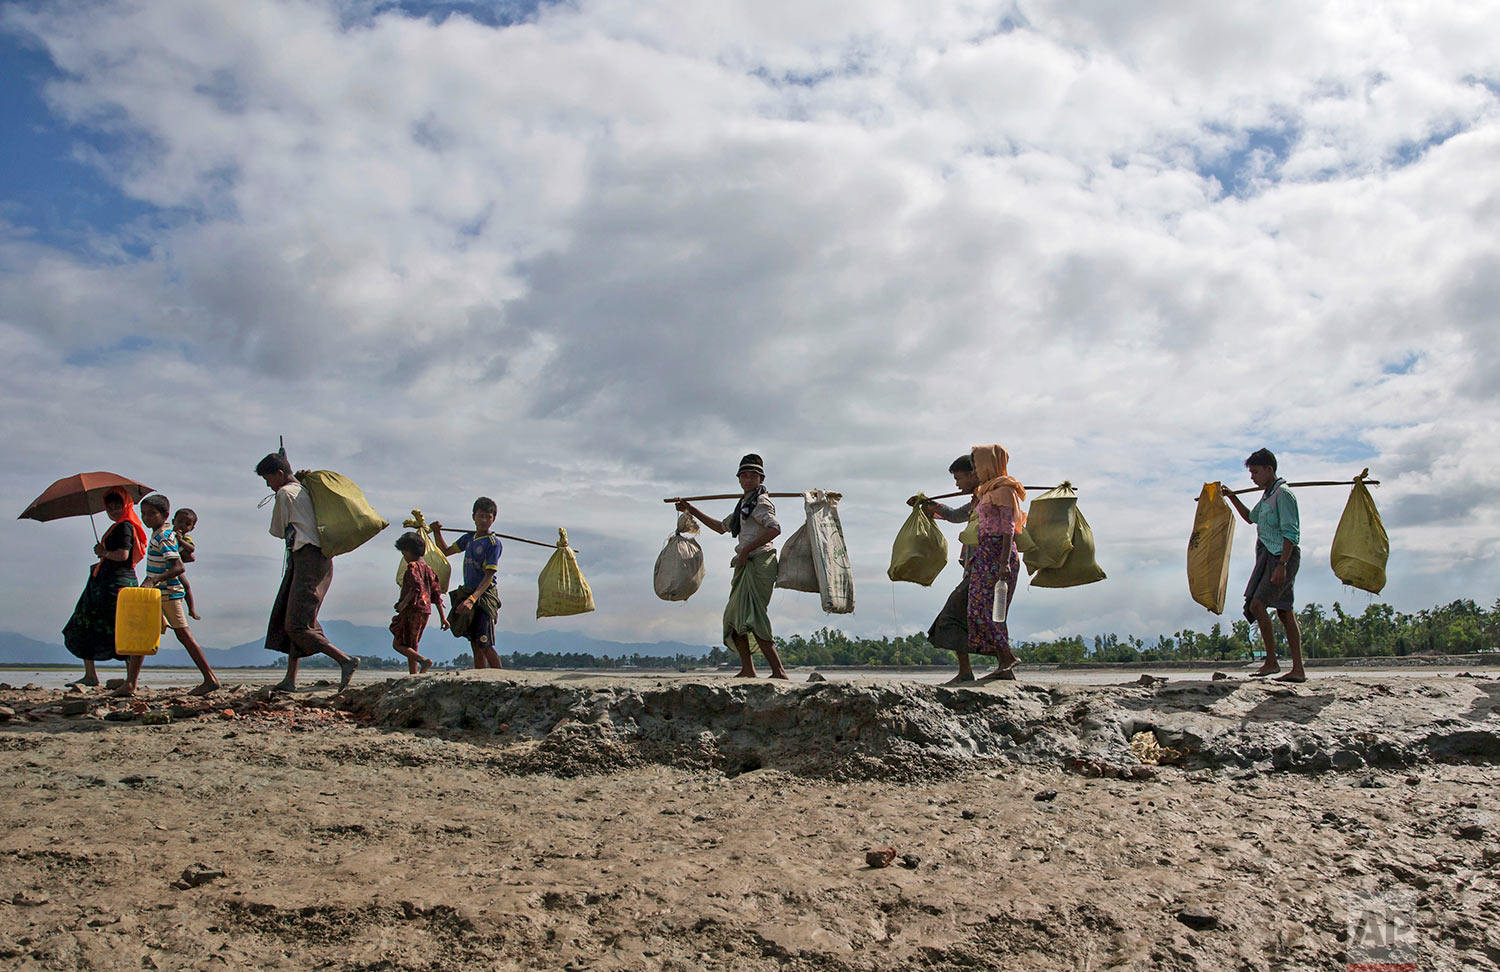 Rohingya Muslims, who crossed over from Myanmar into Bangladesh, walk towards a refugee camp in Shah Porir Dwip, Bangladesh, Thursday, Sept. 14, 2017. Nearly three weeks into a mass exodus of Rohingya fleeing violence in Myanmar, thousands were still flooding across the border Thursday in search of help and safety in teeming refugee settlements in Bangladesh. (AP Photo/Dar Yasin)